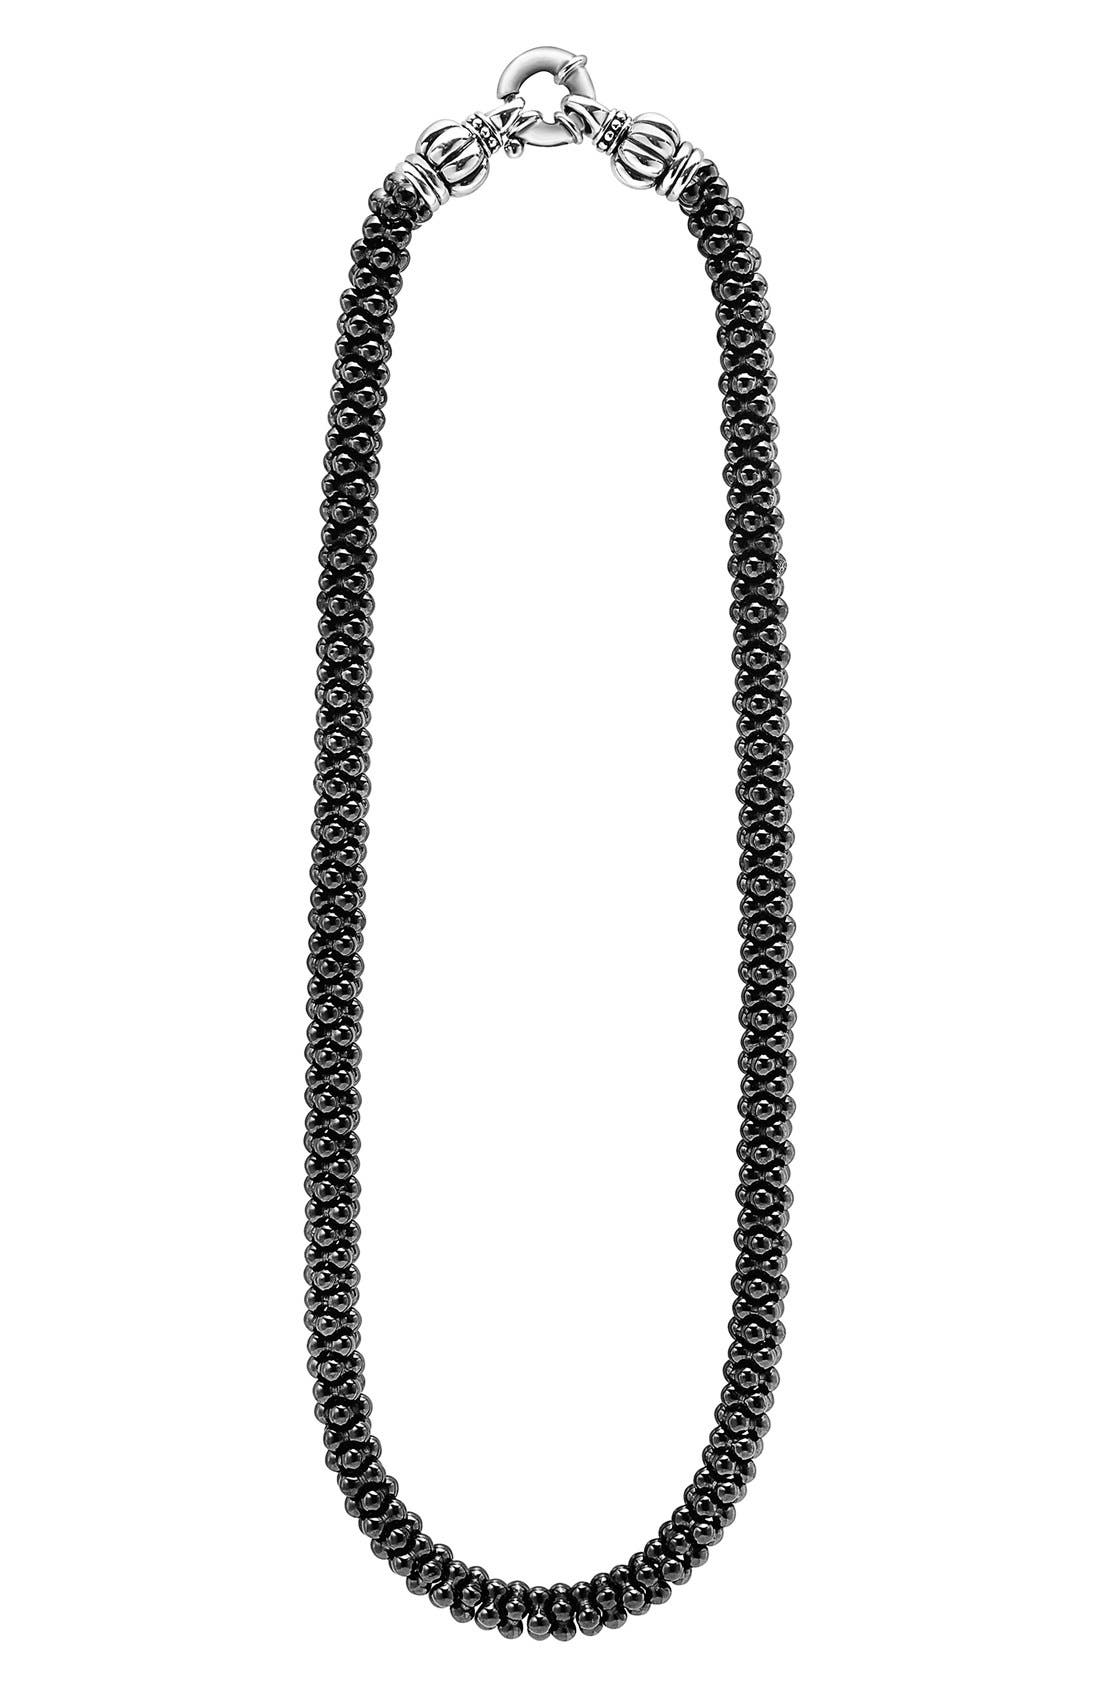 Alternate Image 1 Selected - LAGOS 'Black Caviar' 7mm Beaded Necklace